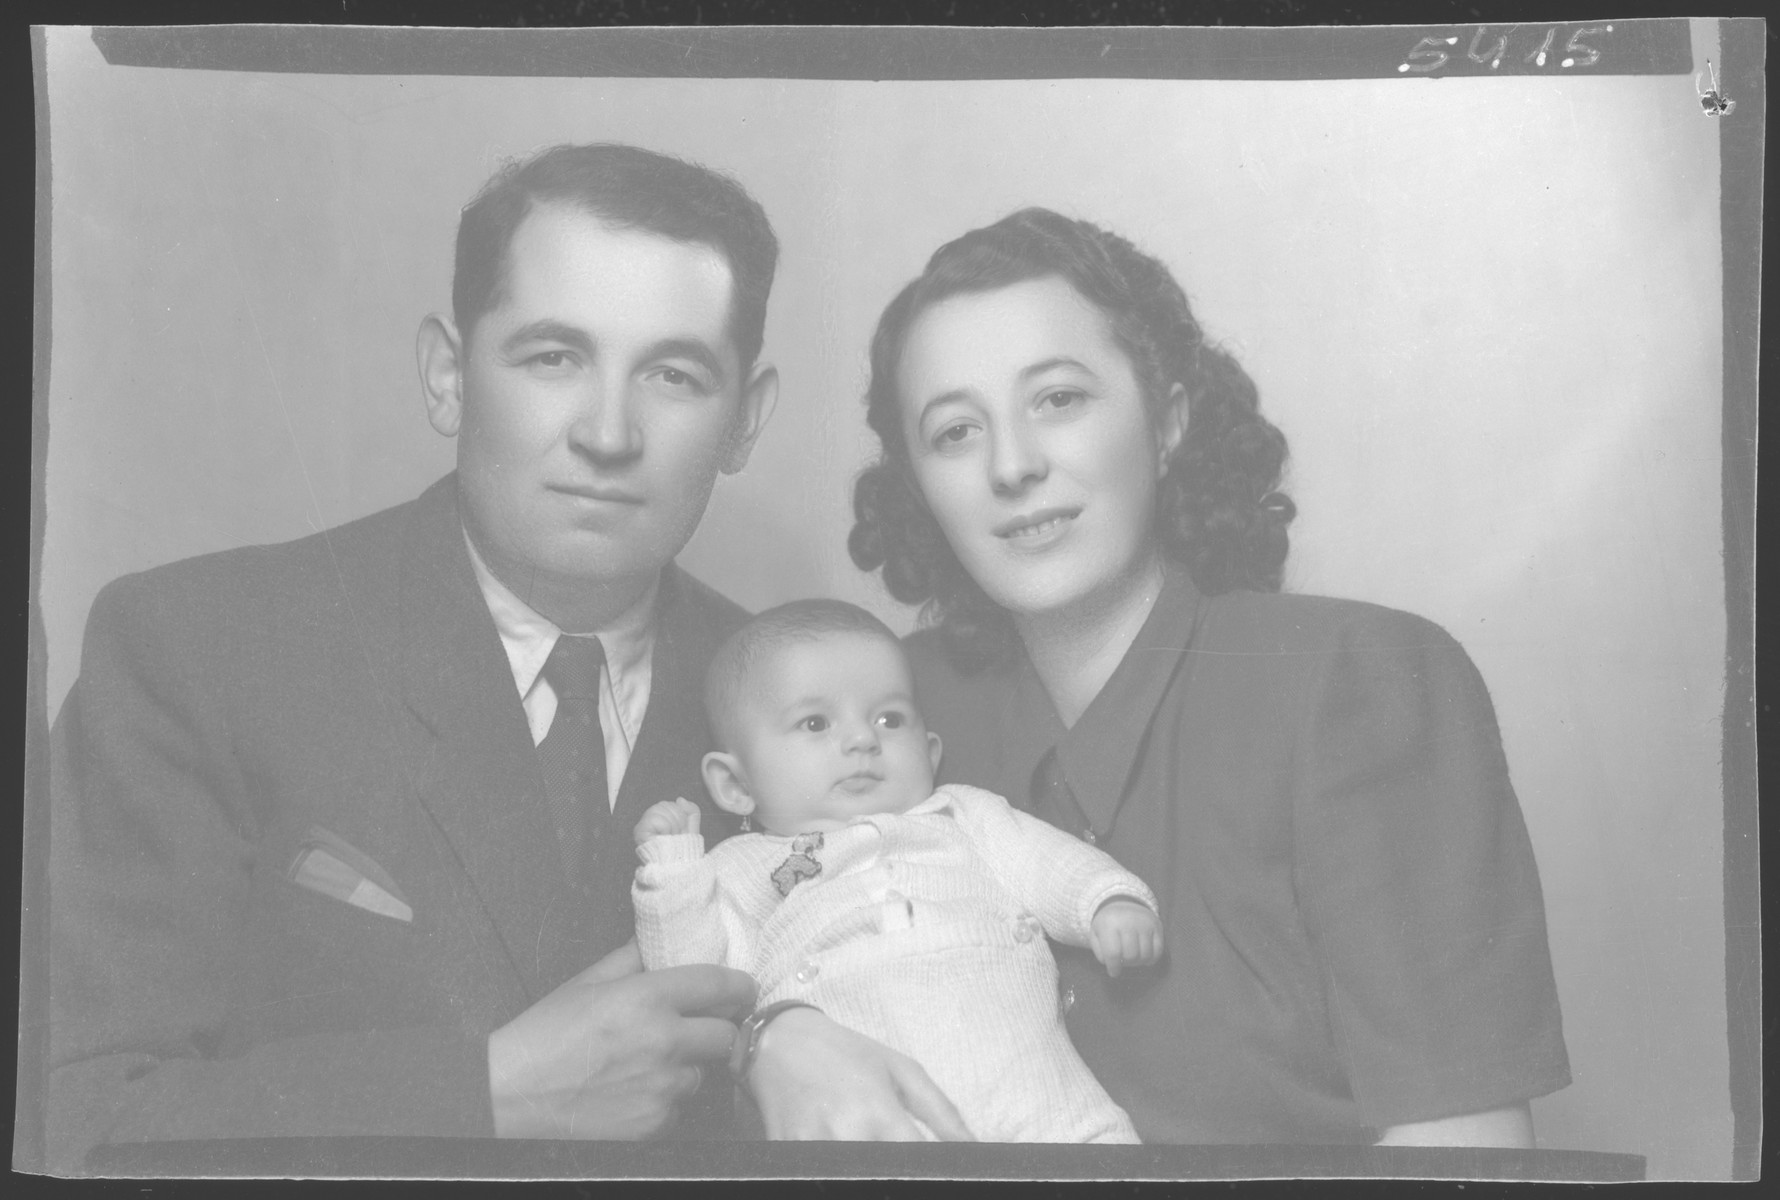 Studio portrait of Anton (Ancsi) Rosenfeld, his wife Gizella Melchner Rosenfeld, and their daughter Vera.  Gizella and Anton met after the war and married in 1946.  Gizella survived Auschwitz and Anton was in a labor battalion.